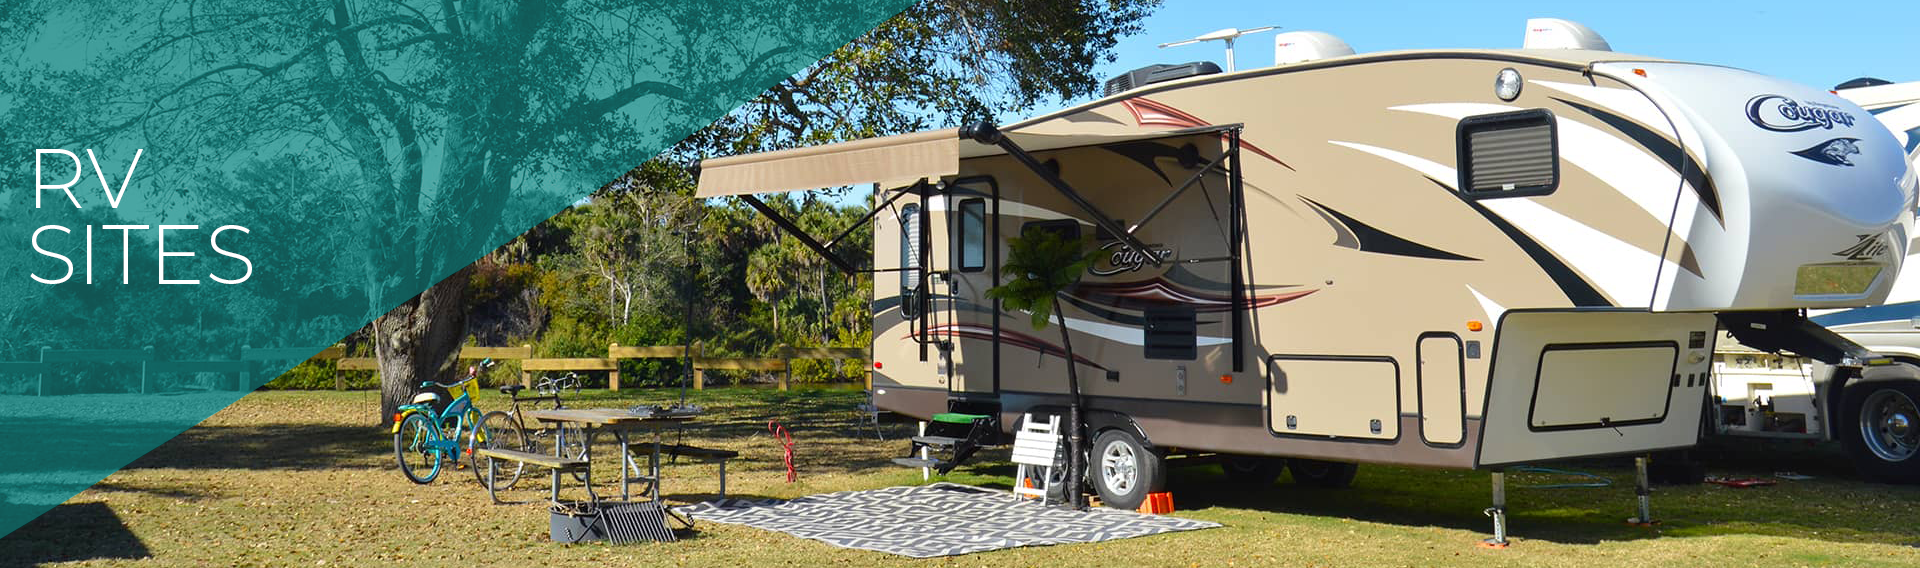 RV camping at Phipps Park